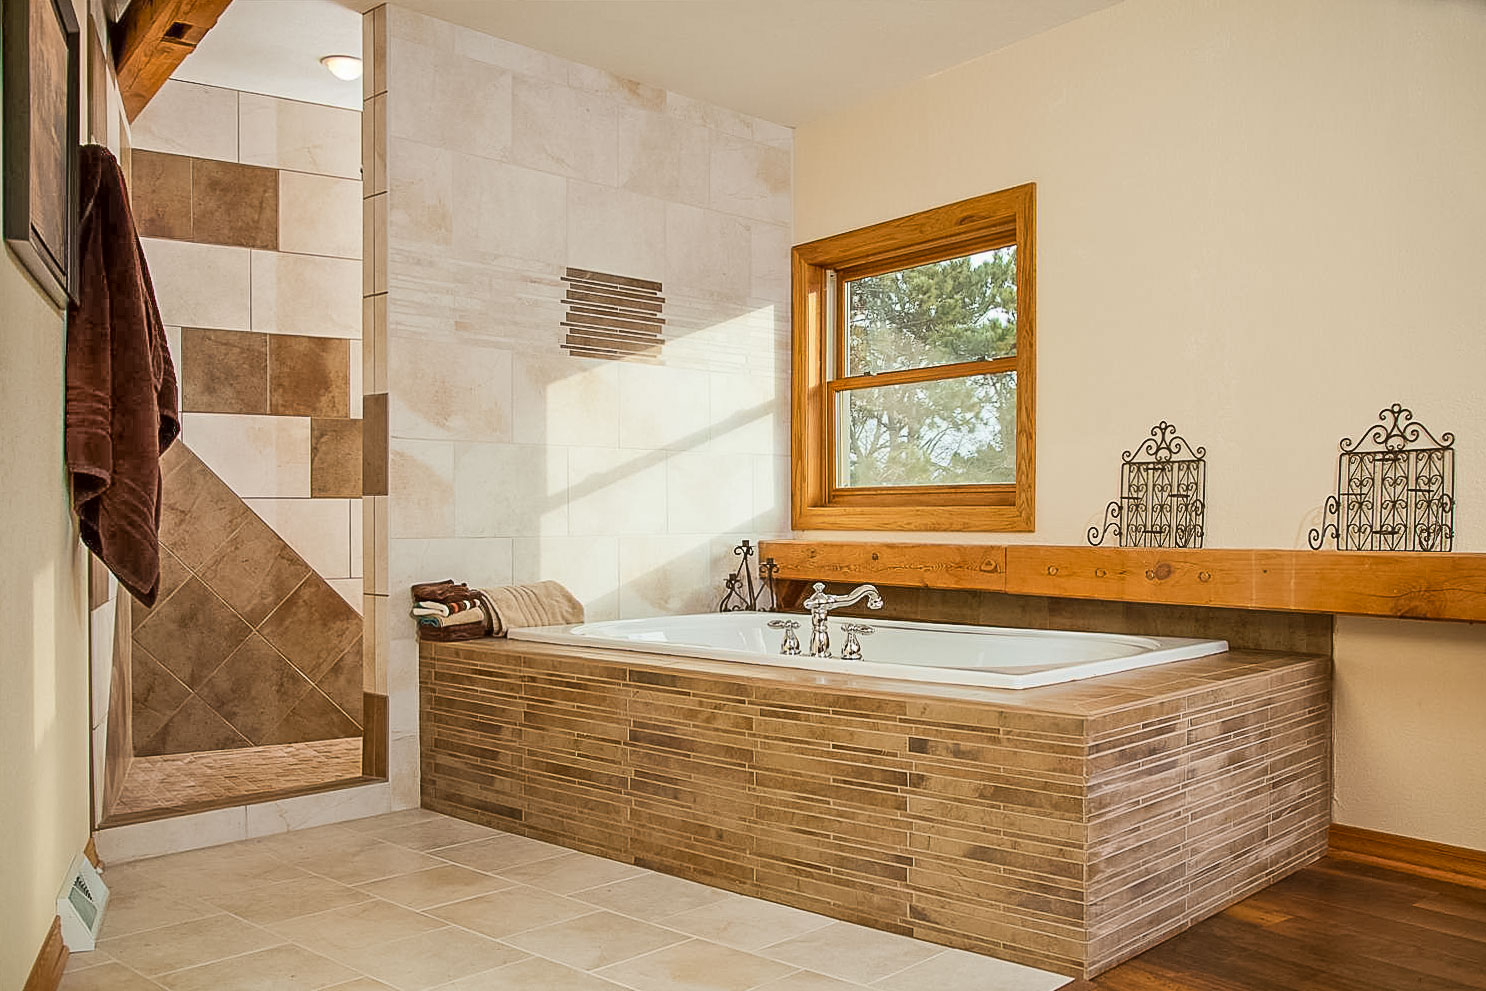 - This one-of-a-kind home received a one-of-a-kind bathroom remodel to fit within its timber frame structure. The clients had space for an amazing shower and a jetted tub, and were dedicated to the jetted tub lifestyle.